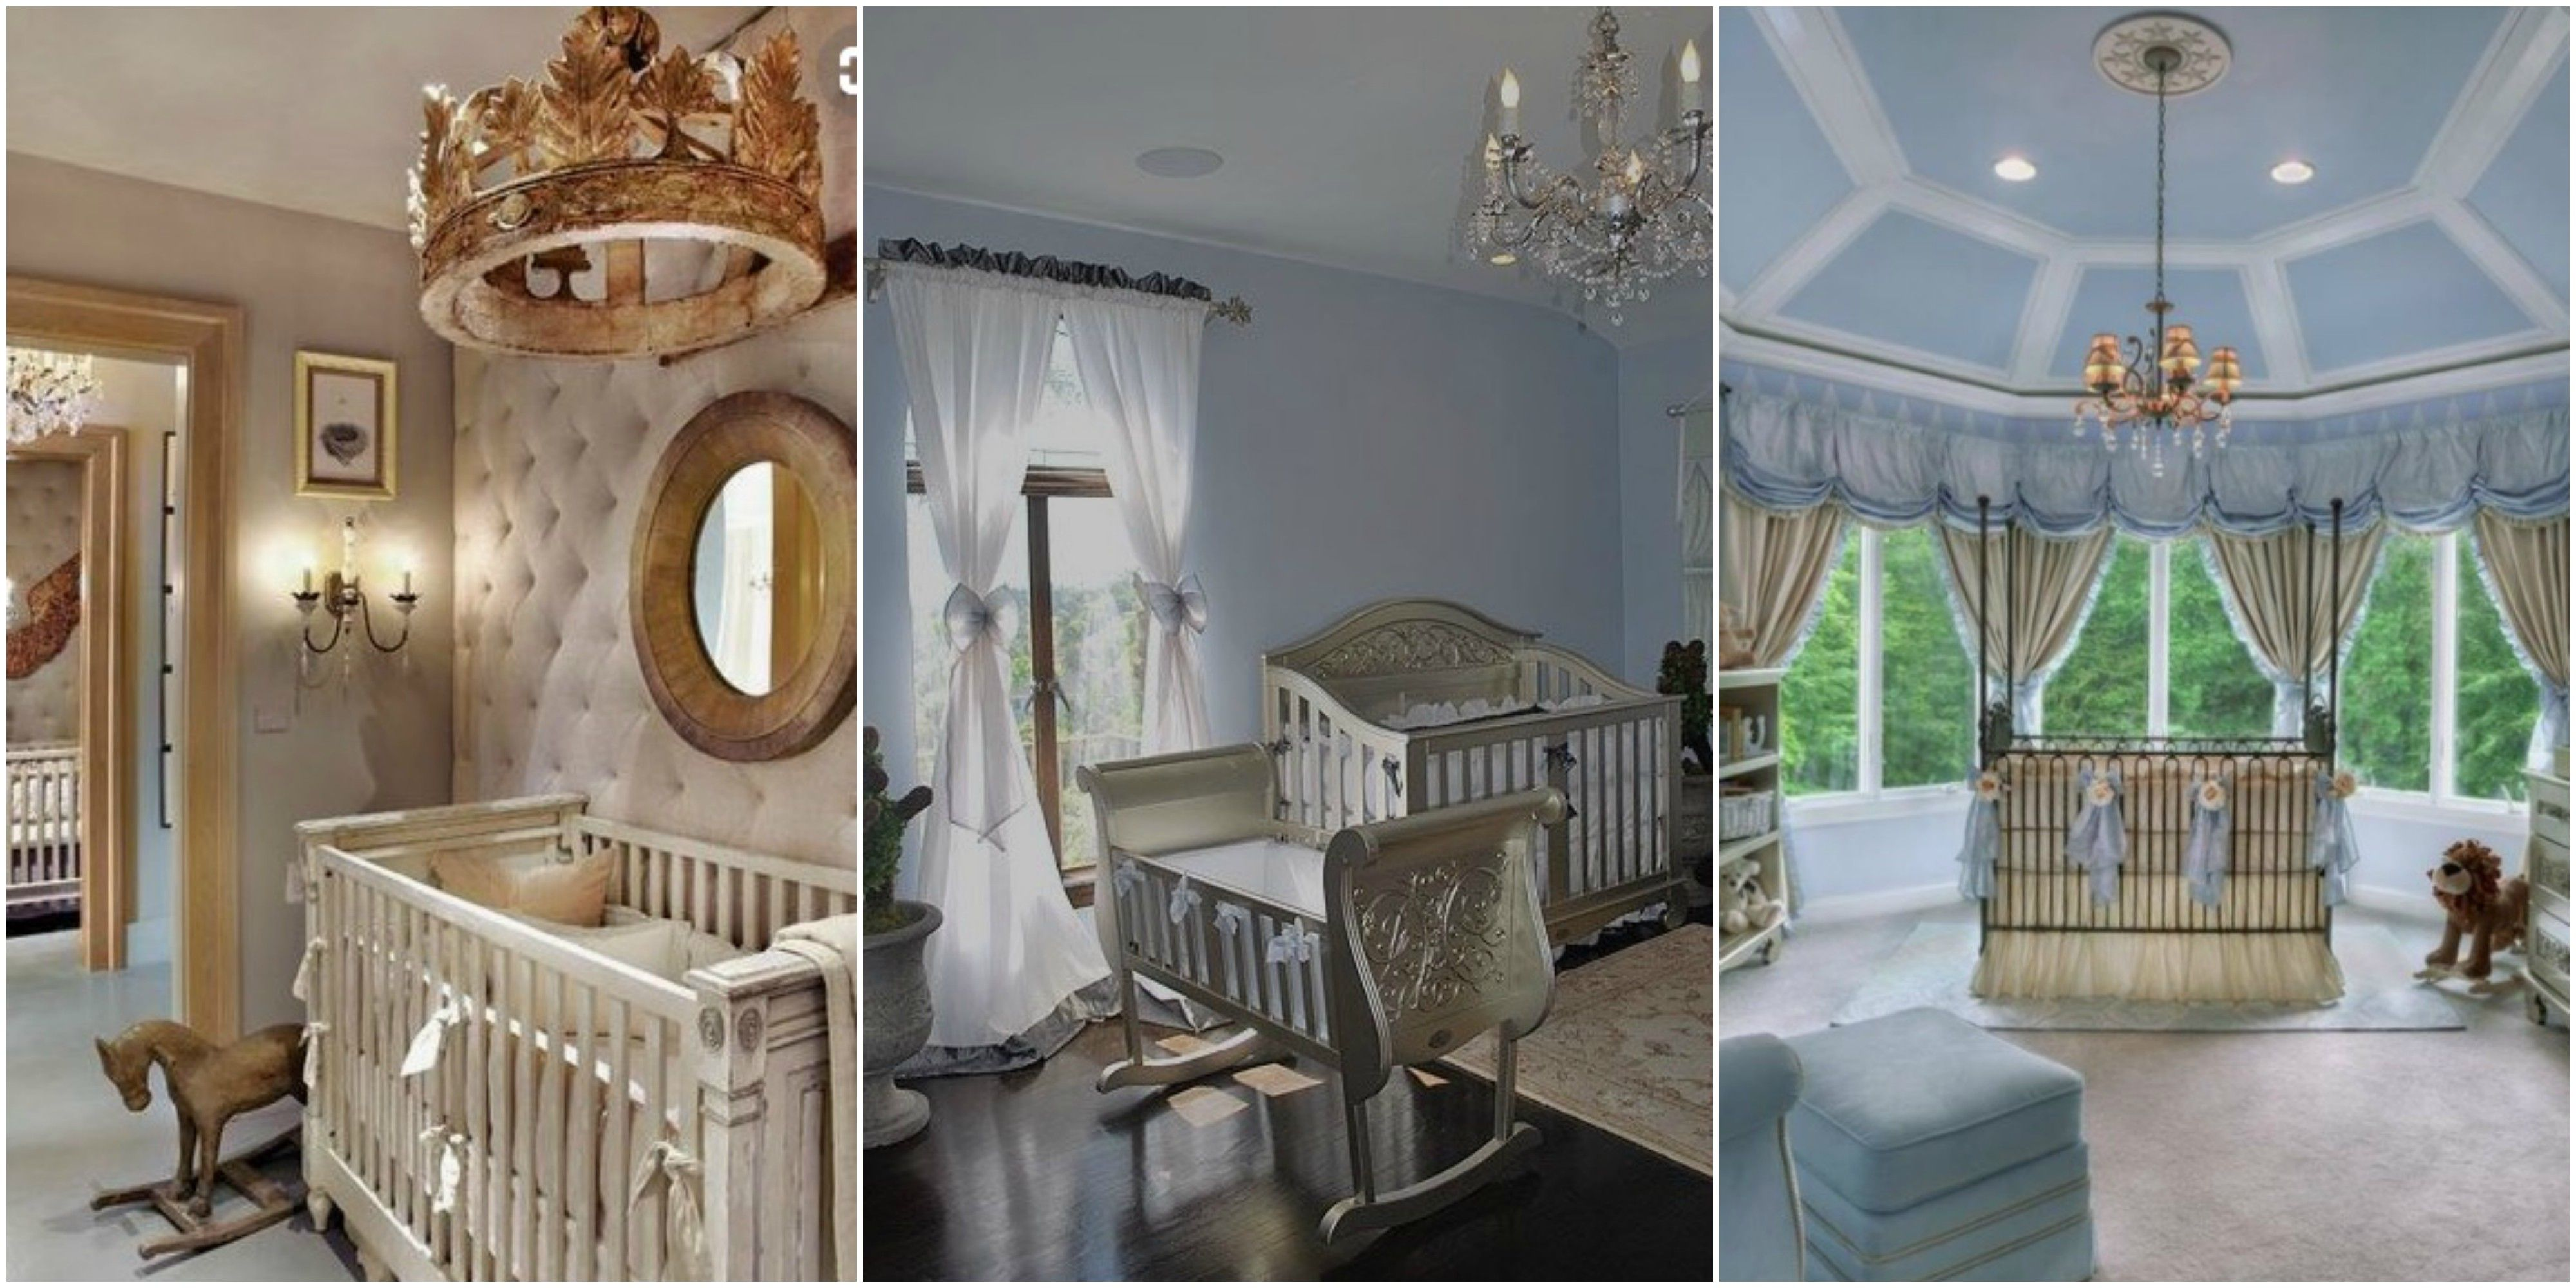 10 Nursery Room Ideas Fit For A Future King As Seen On Pinterest